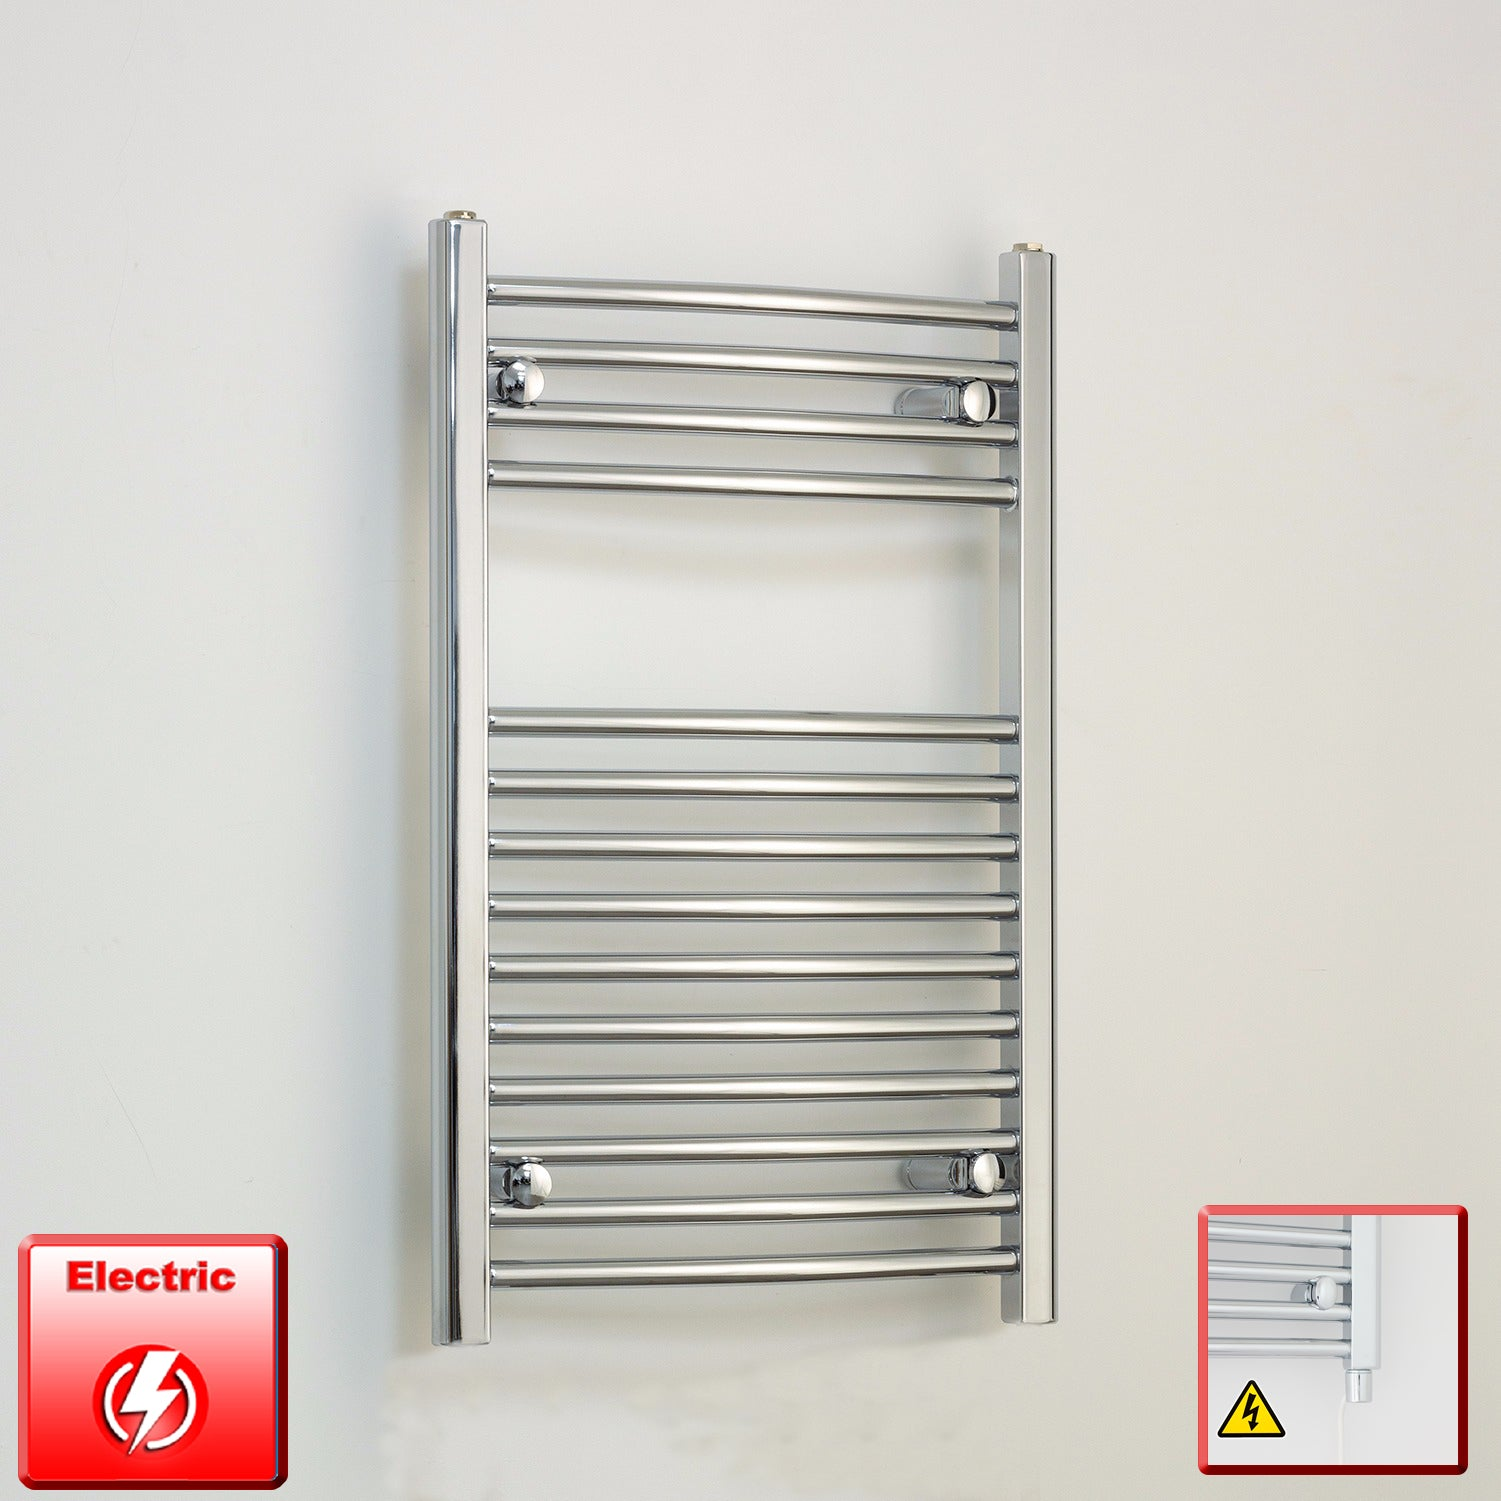 600mm Wide 800mm High Flat Or Curved Chrome Pre-Filled Electric Heated Towel Rail Radiator HTR,Straight / Single Heat Element